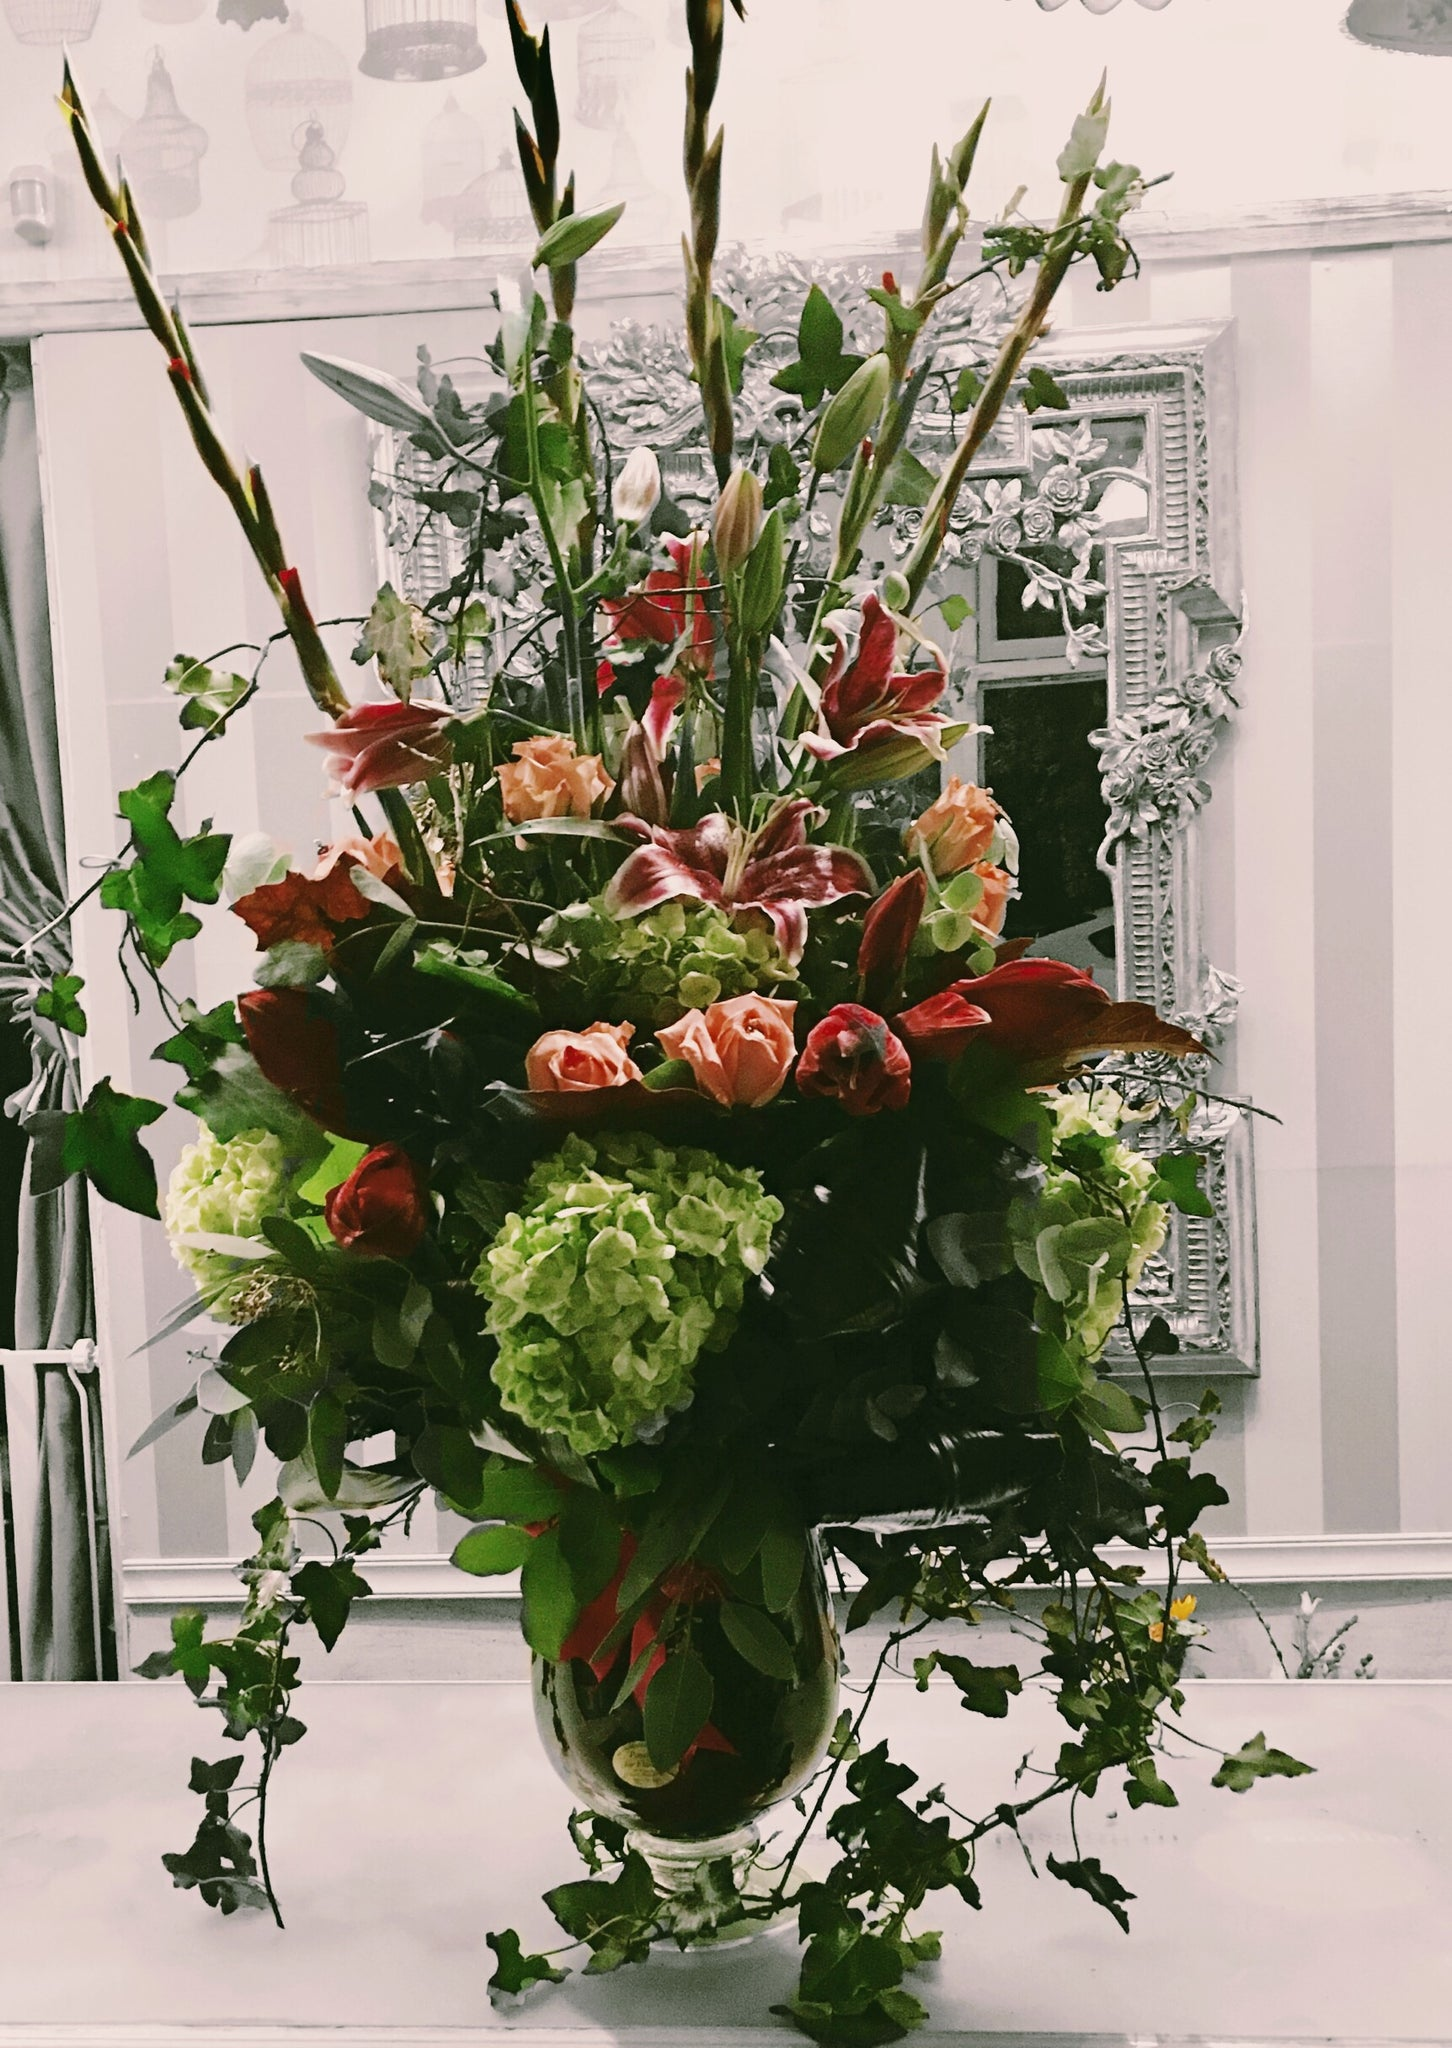 37. Autumn Arrangement